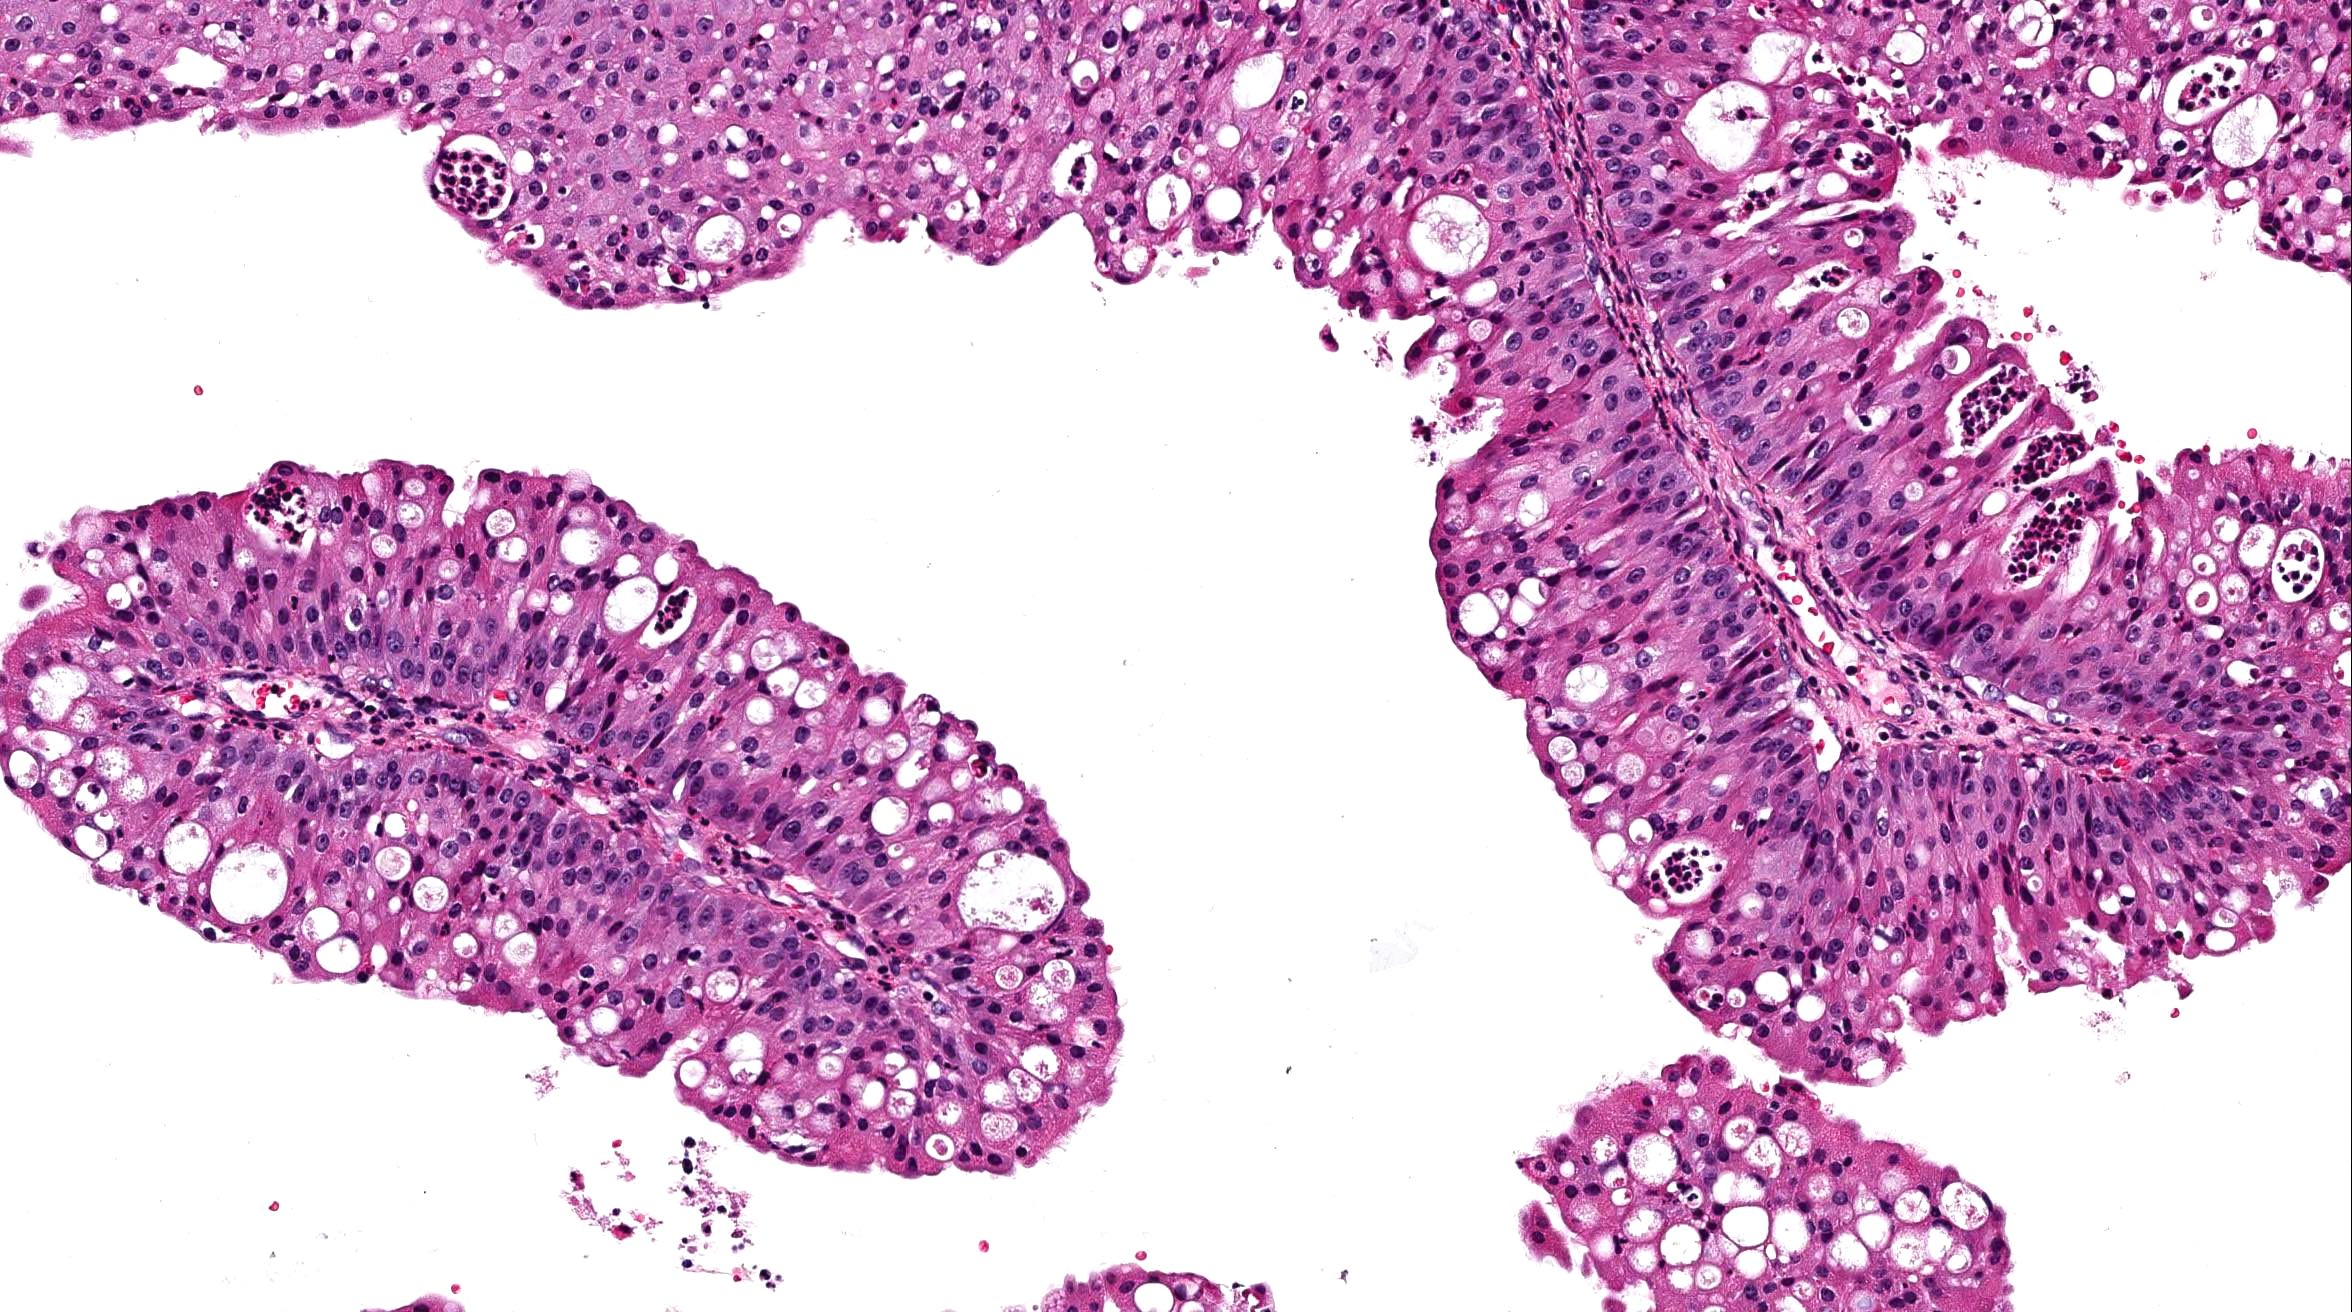 gastric cancer targeted therapy hpv virus tongue pictures